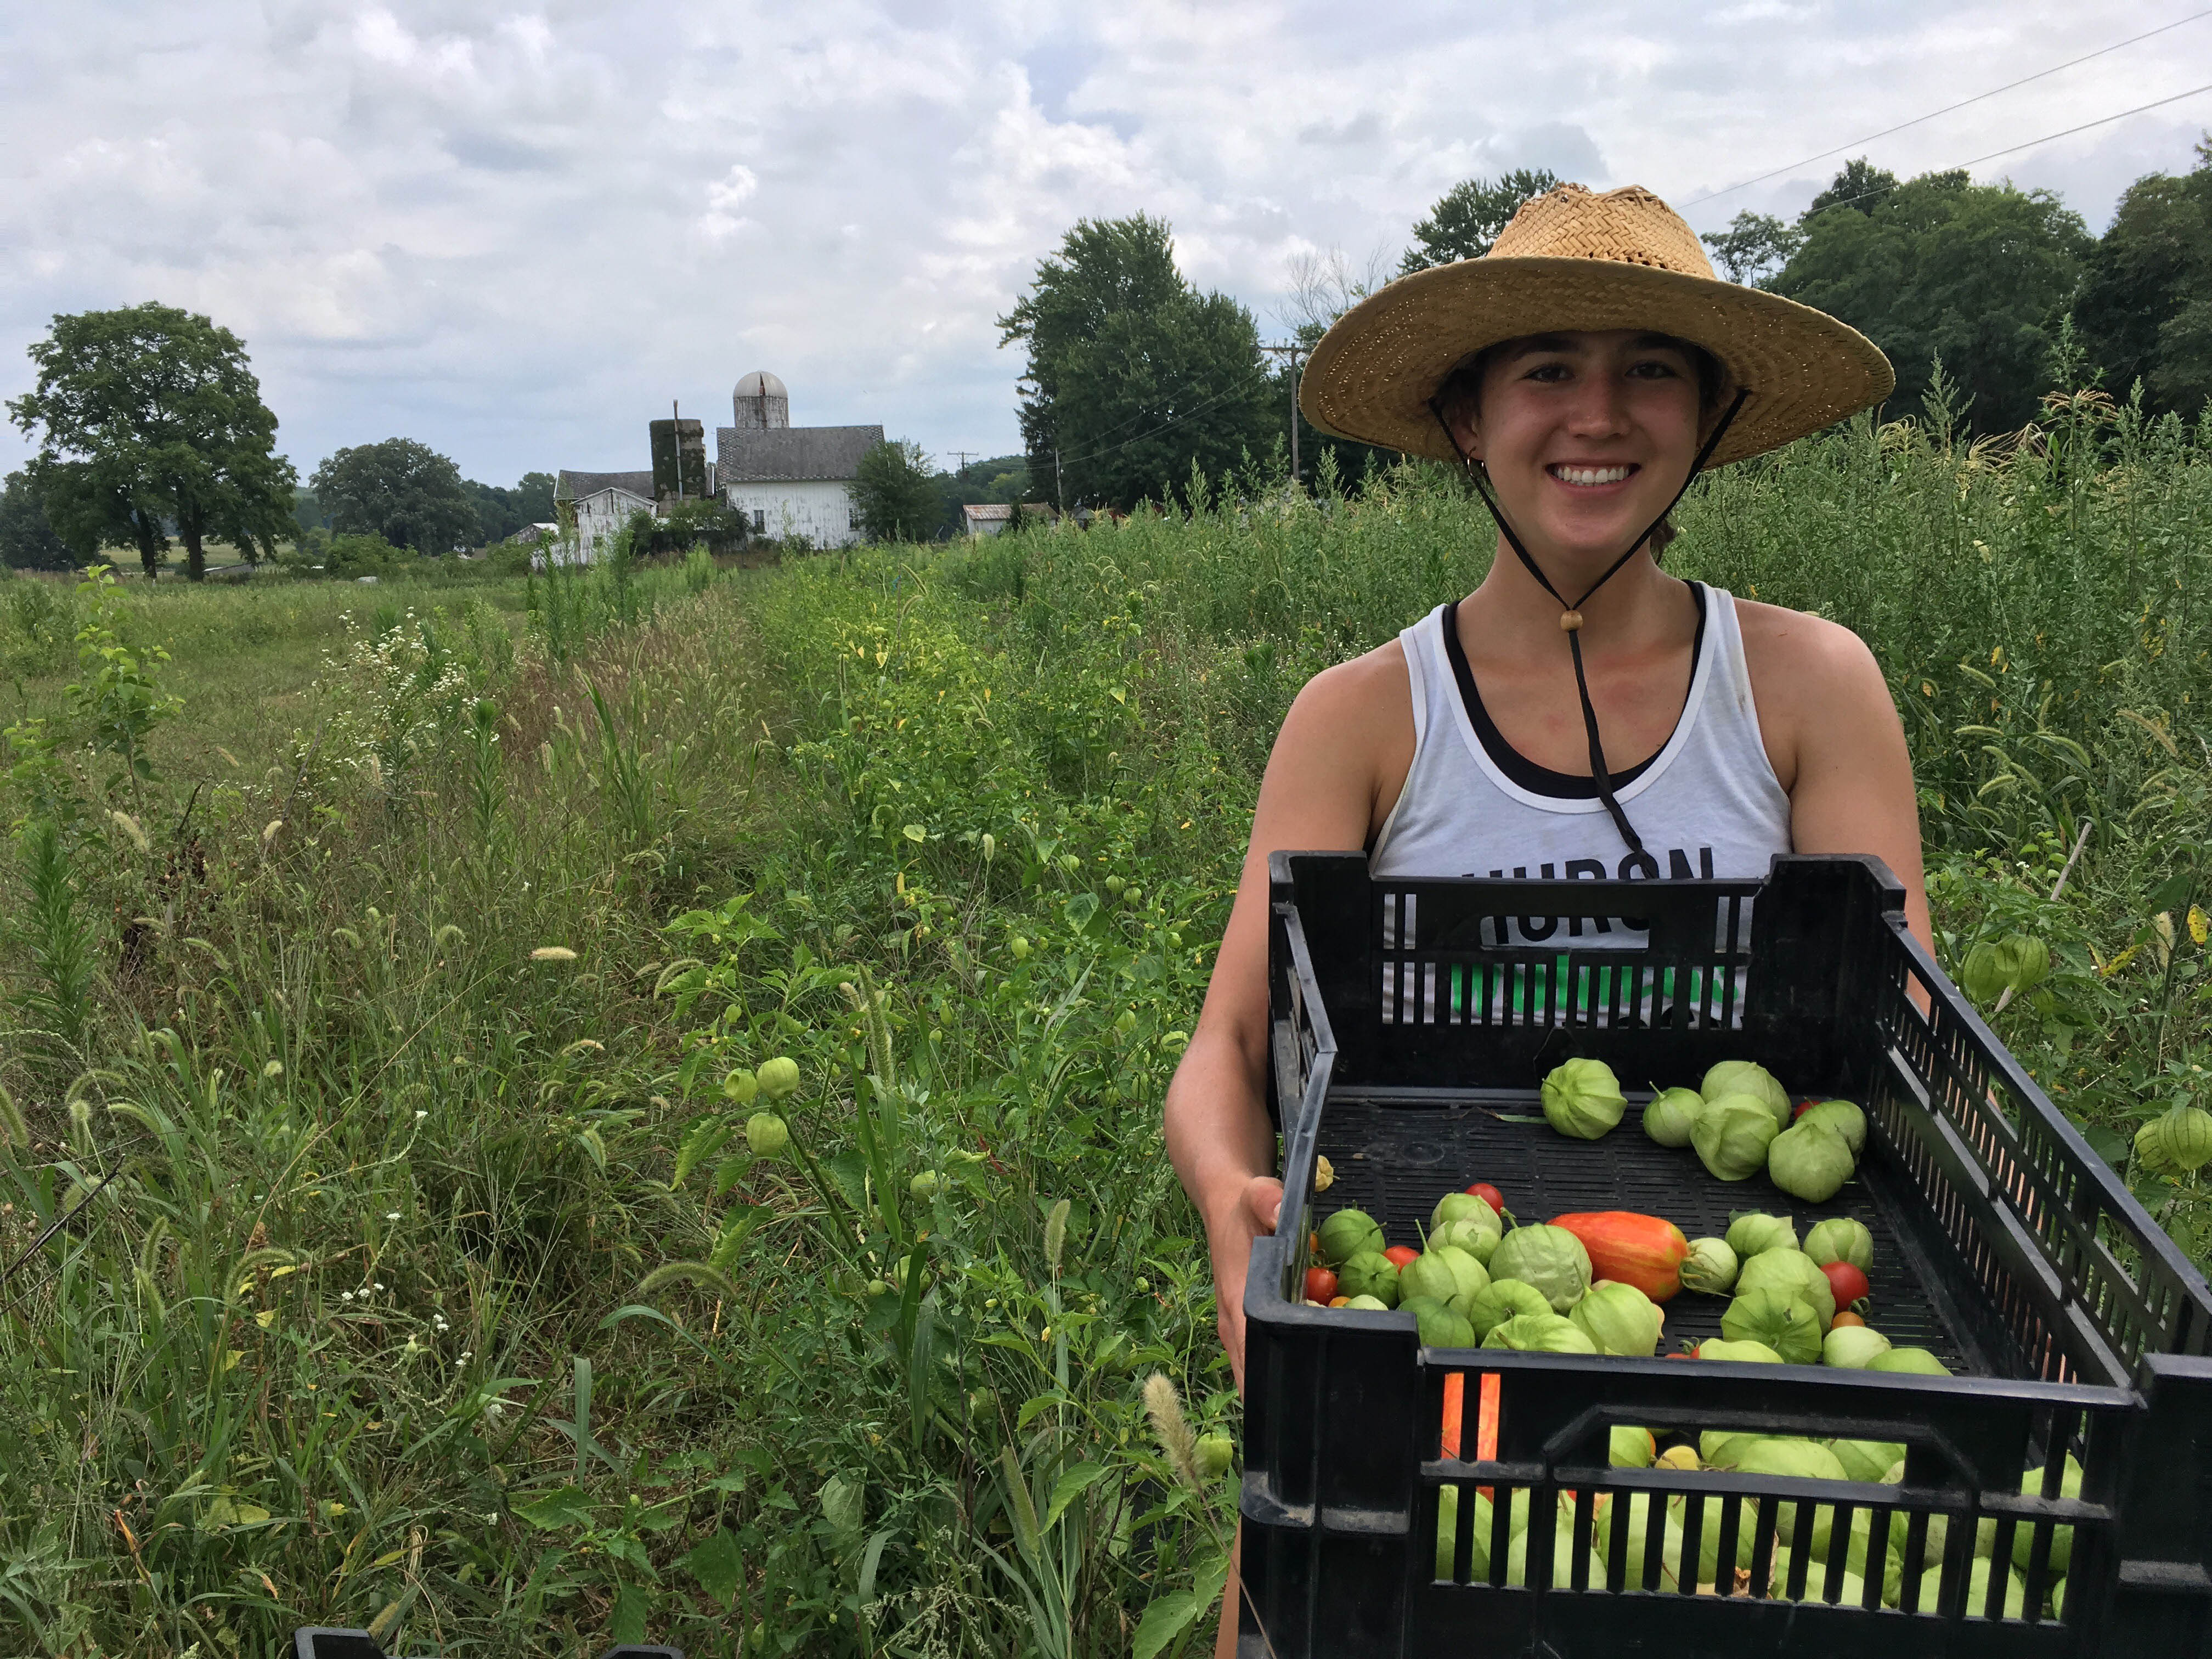 Schmitter holds seasonal produce—tomatillos and heirloom tomatoes—grown on Brines Farm, a local producer providing organic food to Southeast Michigan. Being involved in the full cycle of growing food, from planting to harvesting, is an amazing, rewarding experience, Schmitter says.